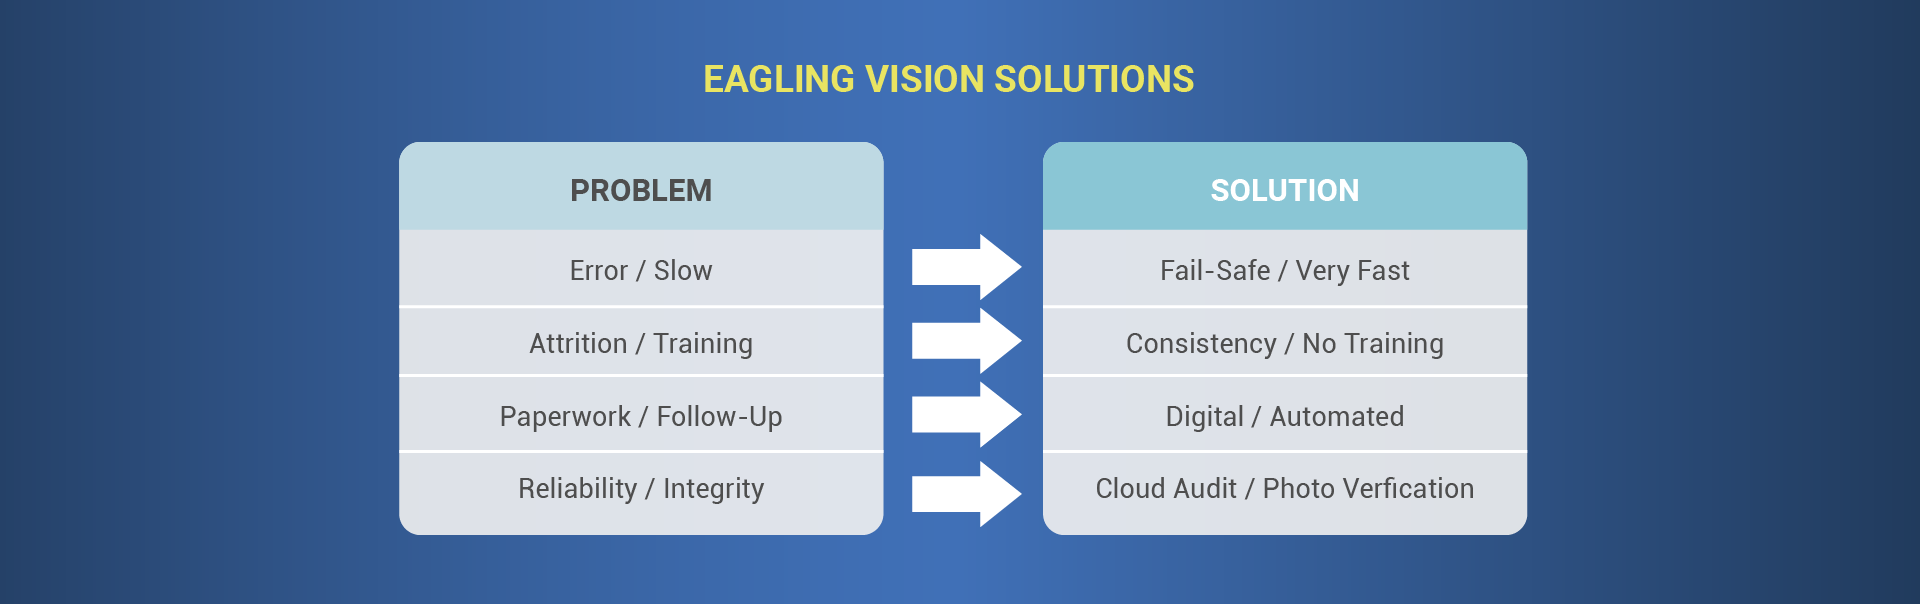 Eagling Vision Solutions